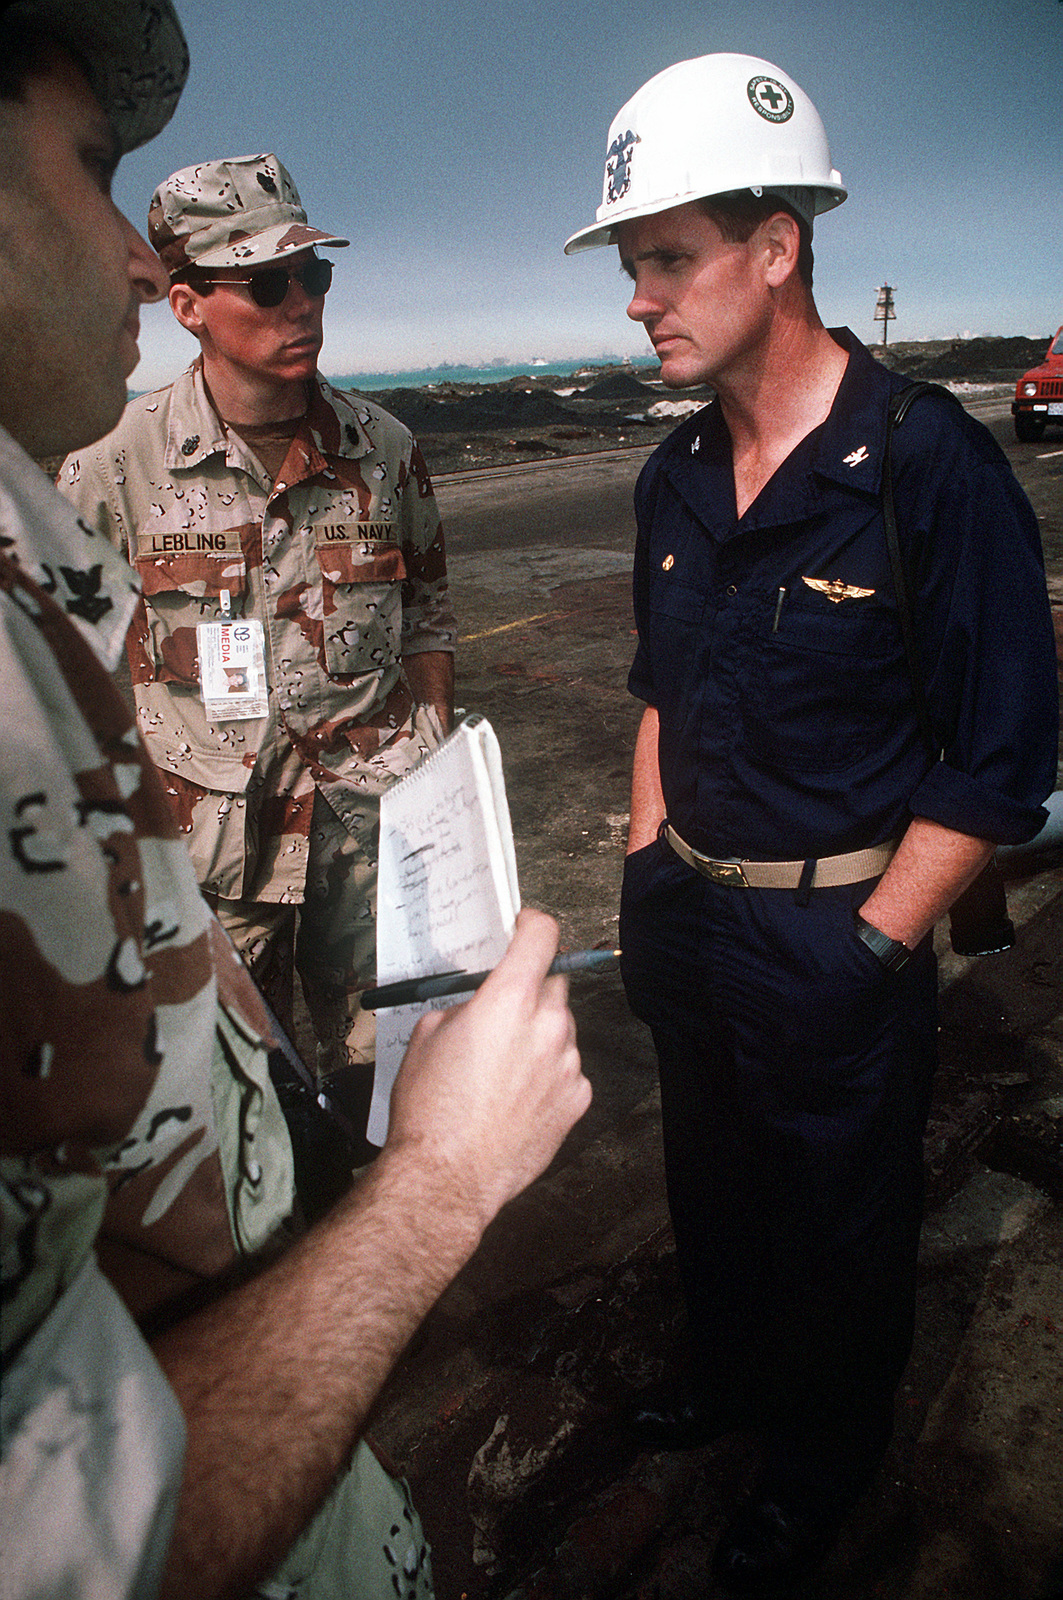 CHIEF PETTY Officer Keith Lebling and Journalist 2nd Class Pete Hatzakos, both of Navy Broadcasting Service, interview CAPT. G.B. McEwen, commanding officer of the amphibious assault ship USS TRIPOLI (LPH-10), regarding damage to the vessel. The TRIPOLI, now in dry dock awaiting repairs, was damaged by an Iraqi mine that the ship struck while serving as a mine-clearing platform in the northern Persian Gulf on February 18 during Operation Desert Storm. The TRIPOLI was able to continue operations after damage control crews stopped the flooding caused by the explosion